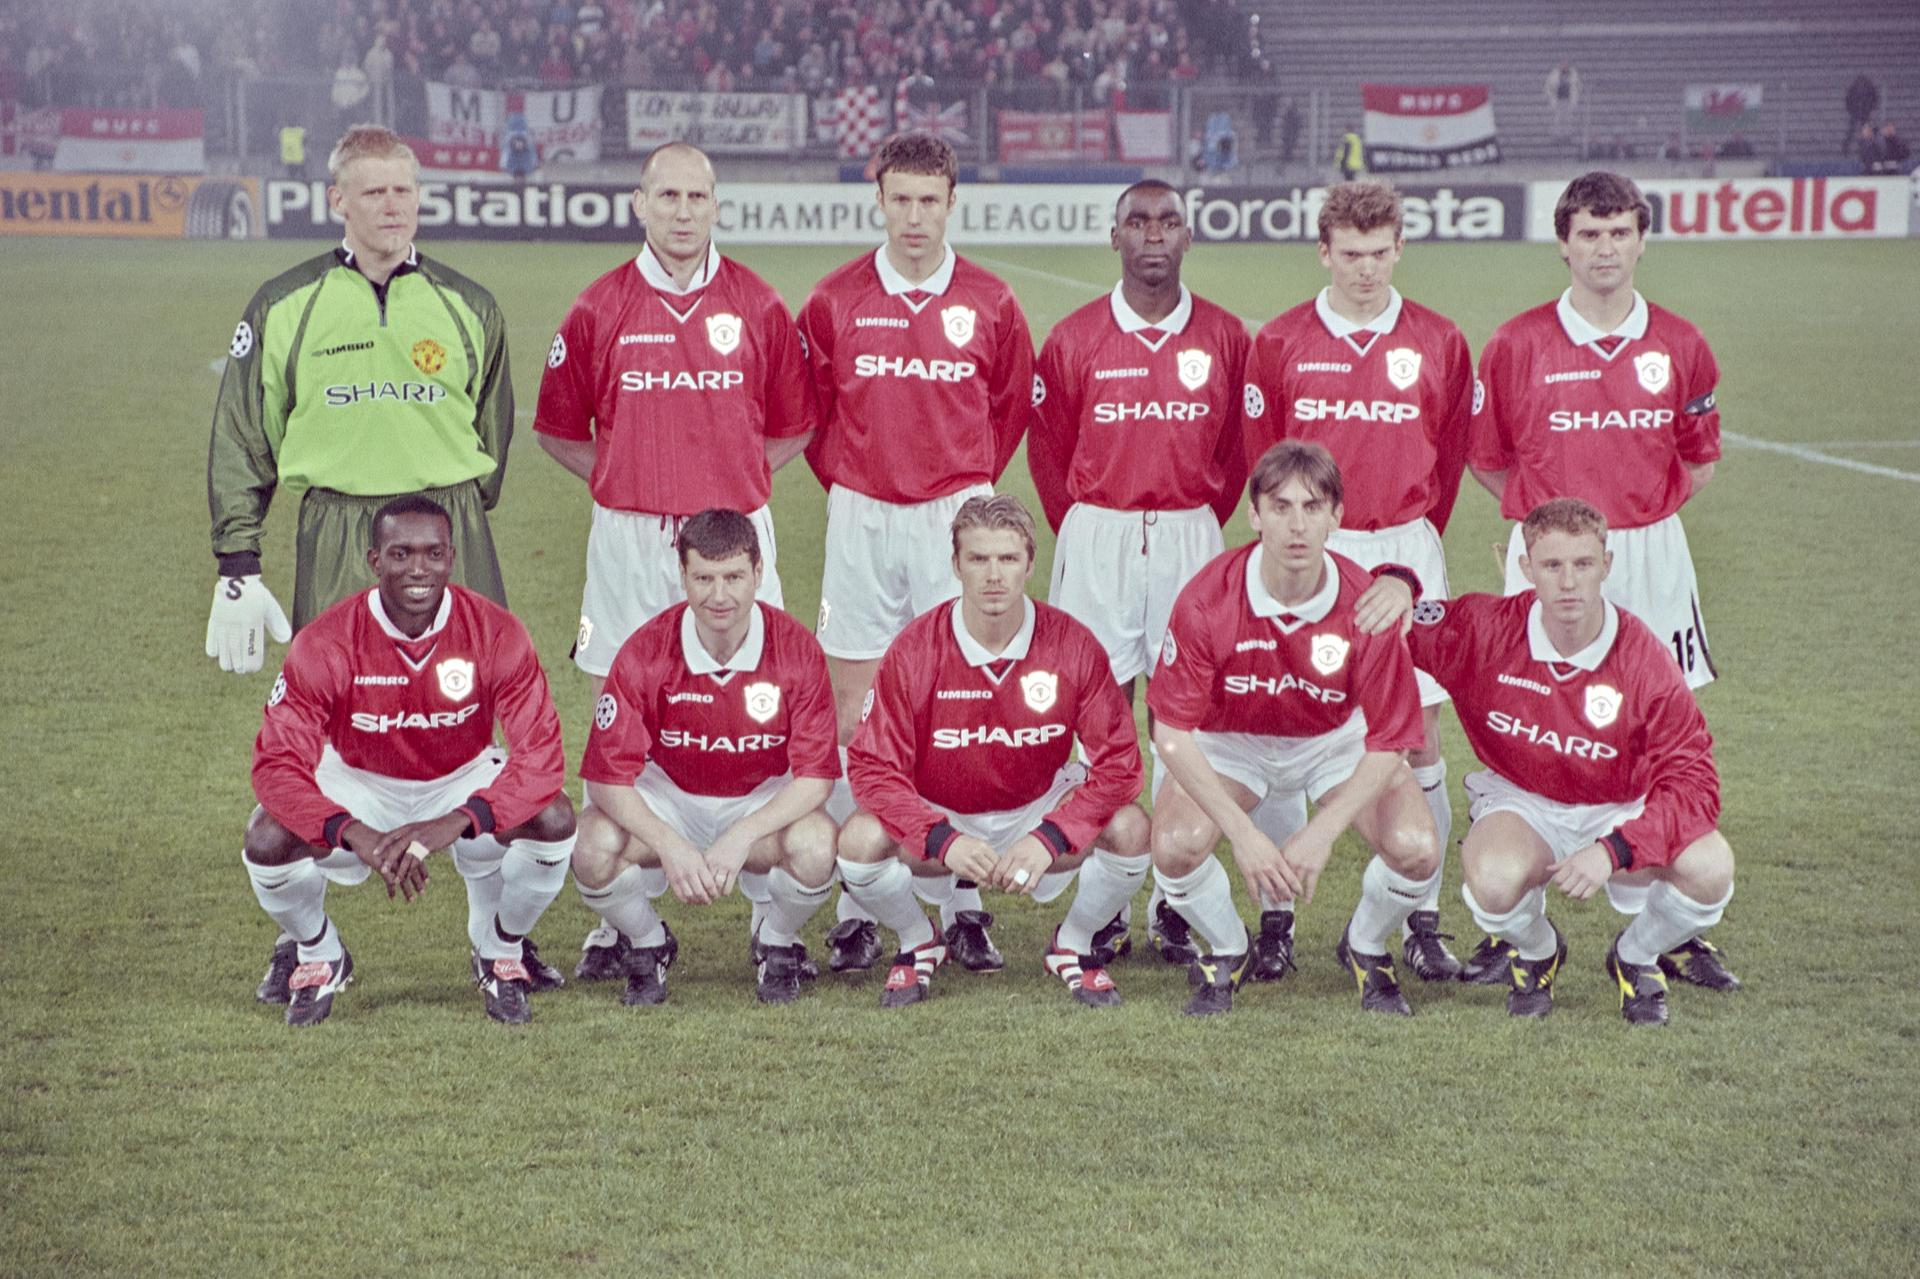 The United line-up before facing Juventus in 1999.